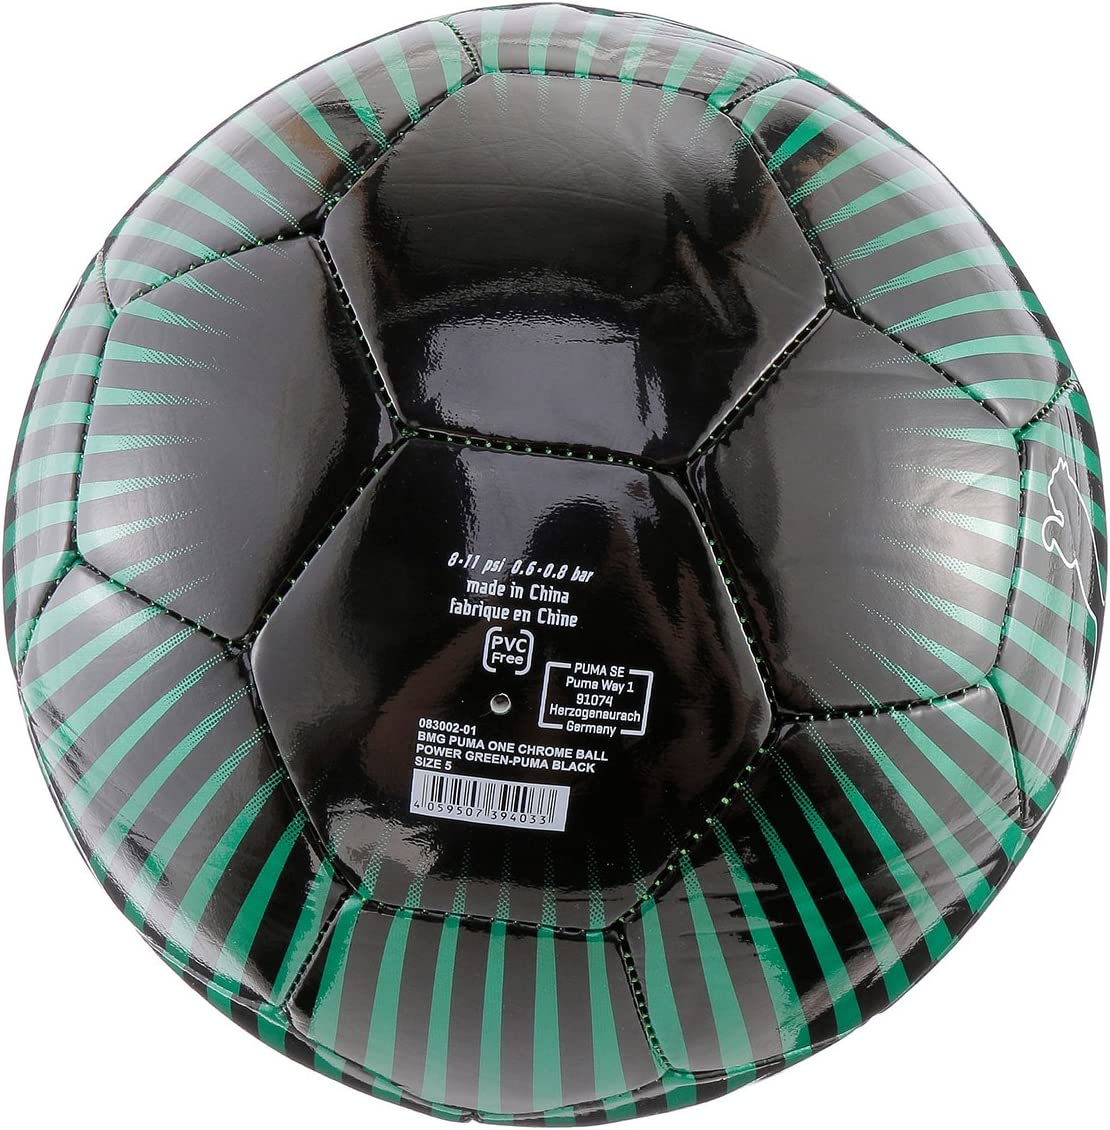 PUMA BMG One Chrome Balón de fútbol, Night Sky, 5: Amazon.es ...